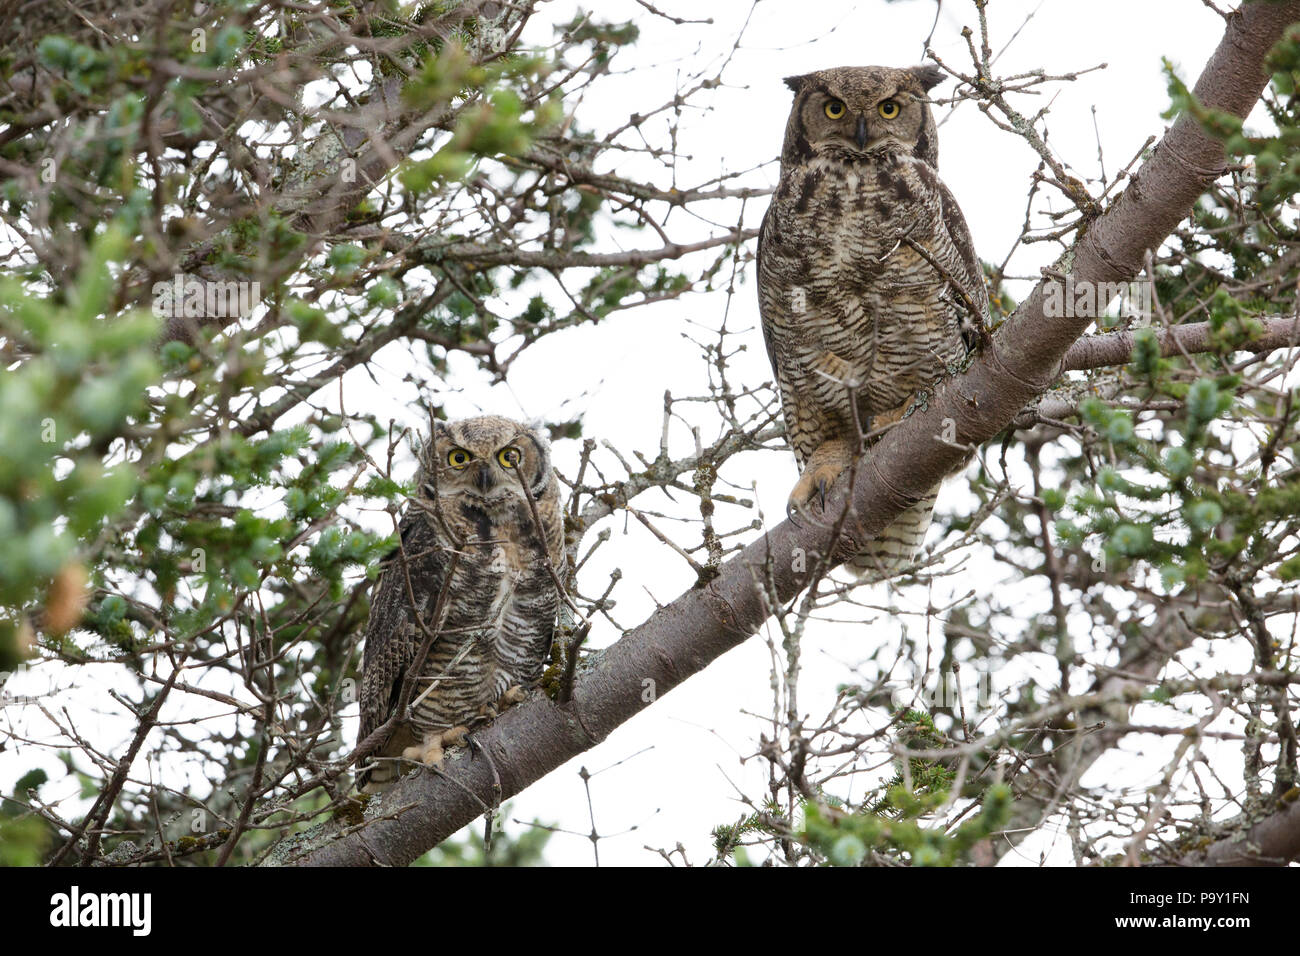 great horned owl (Bubo virginianus) - Stock Image